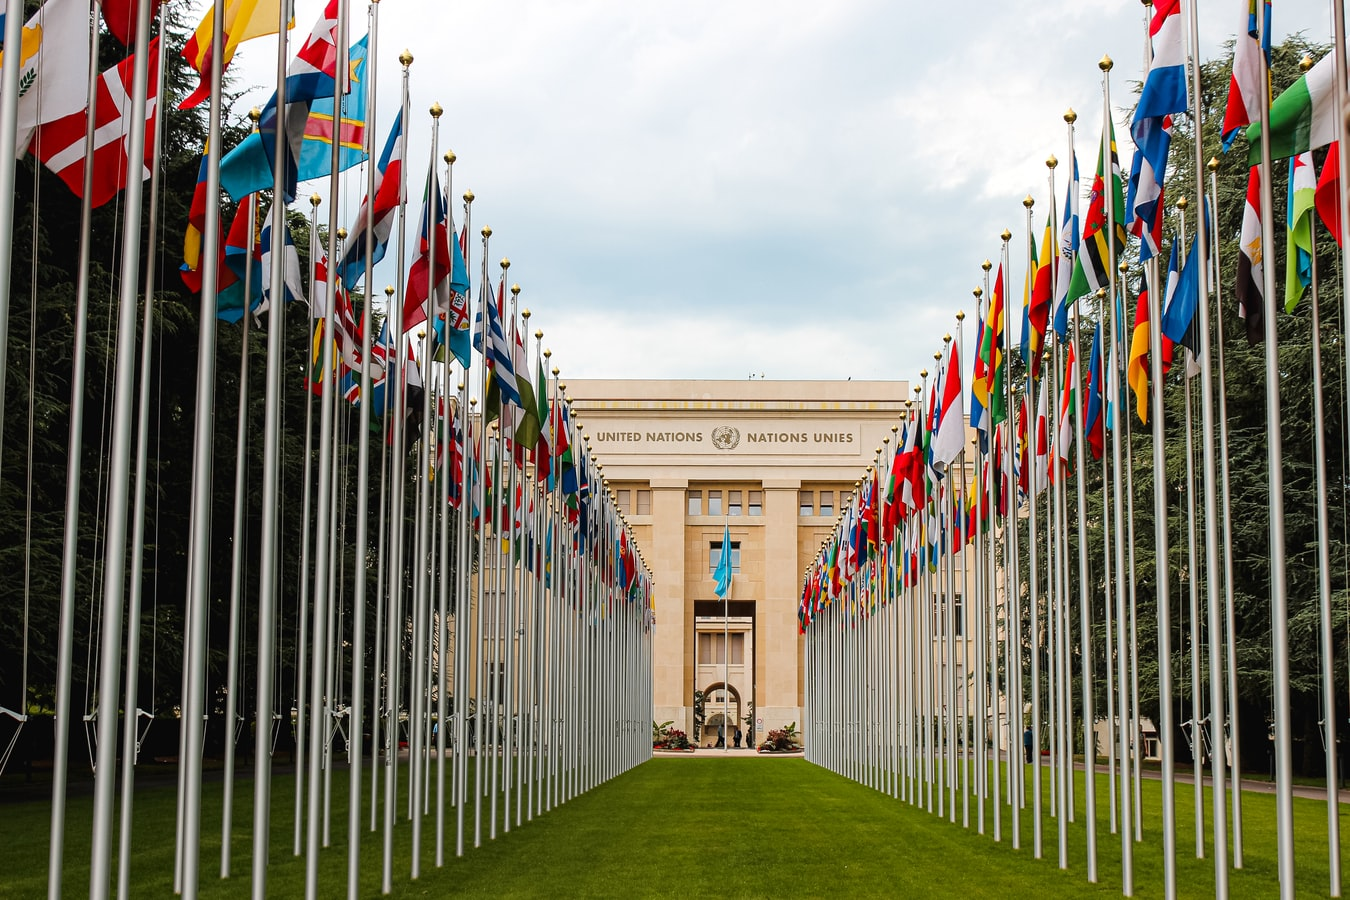 A bunch of countries' flags leading up to the United Nations.